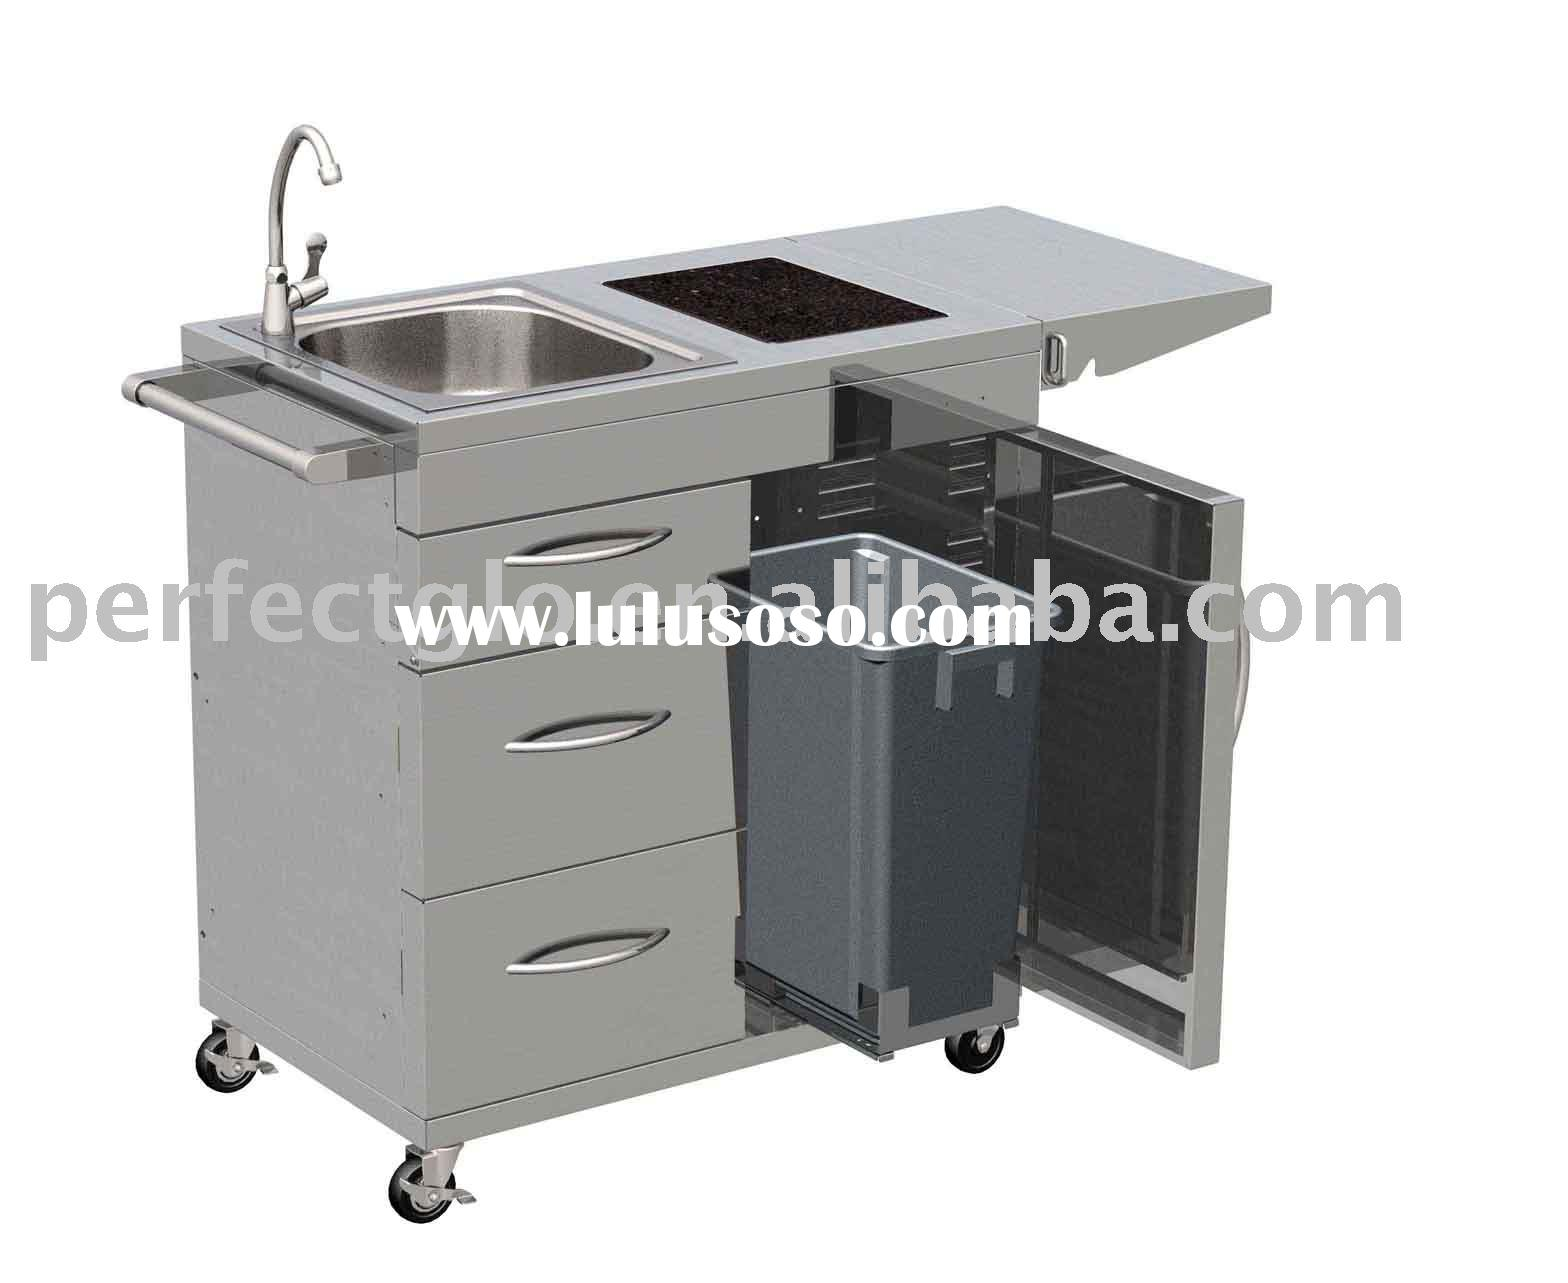 Amazing Stainless steel outdoor kitchen cart 1568 x 1283 · 91 kB · jpeg